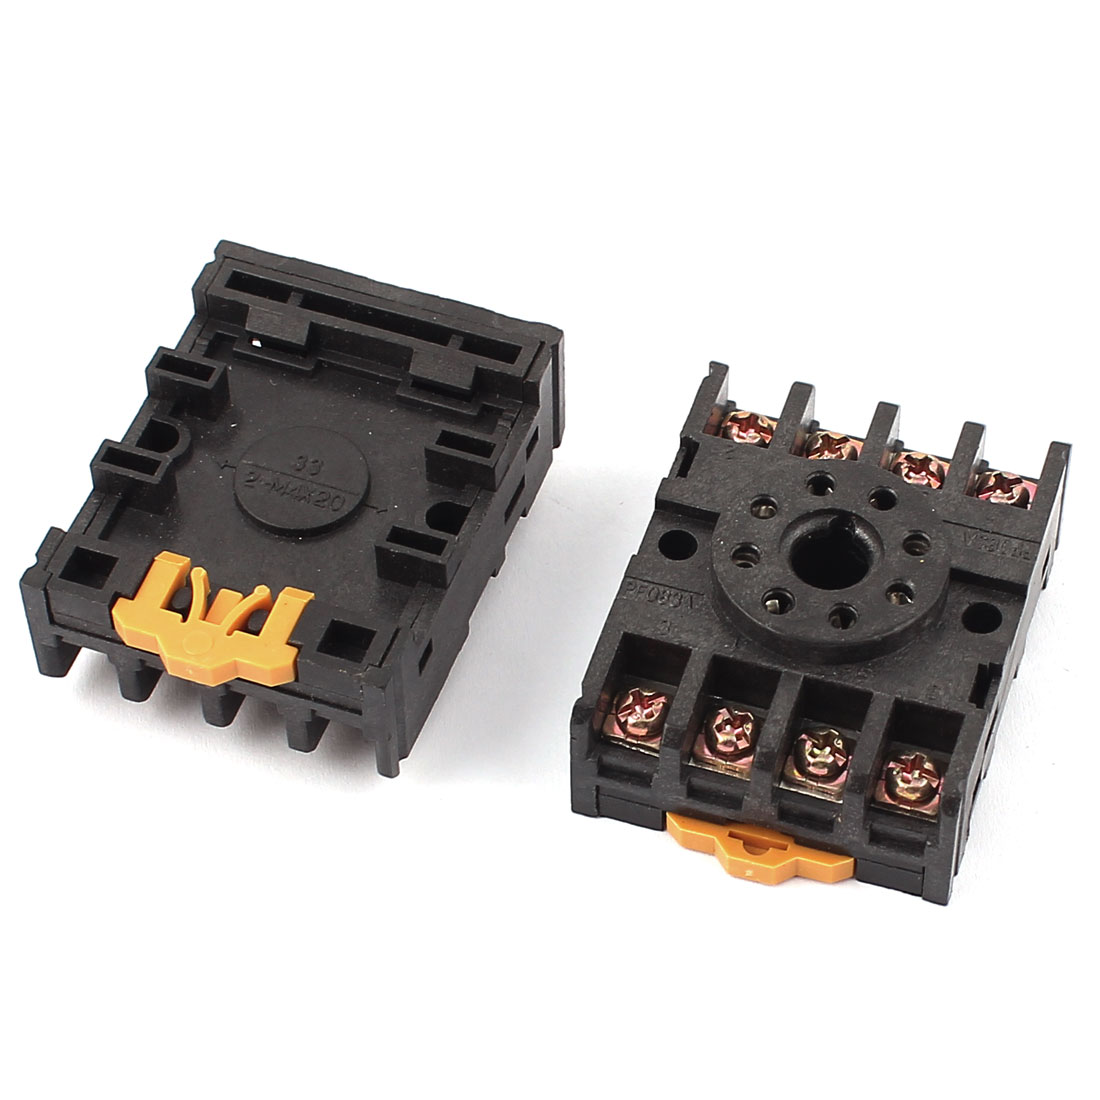 2Pcs PYF083A 8 Terminals Power Timer Relay Socket Base Holder for JTX-2C DH48S